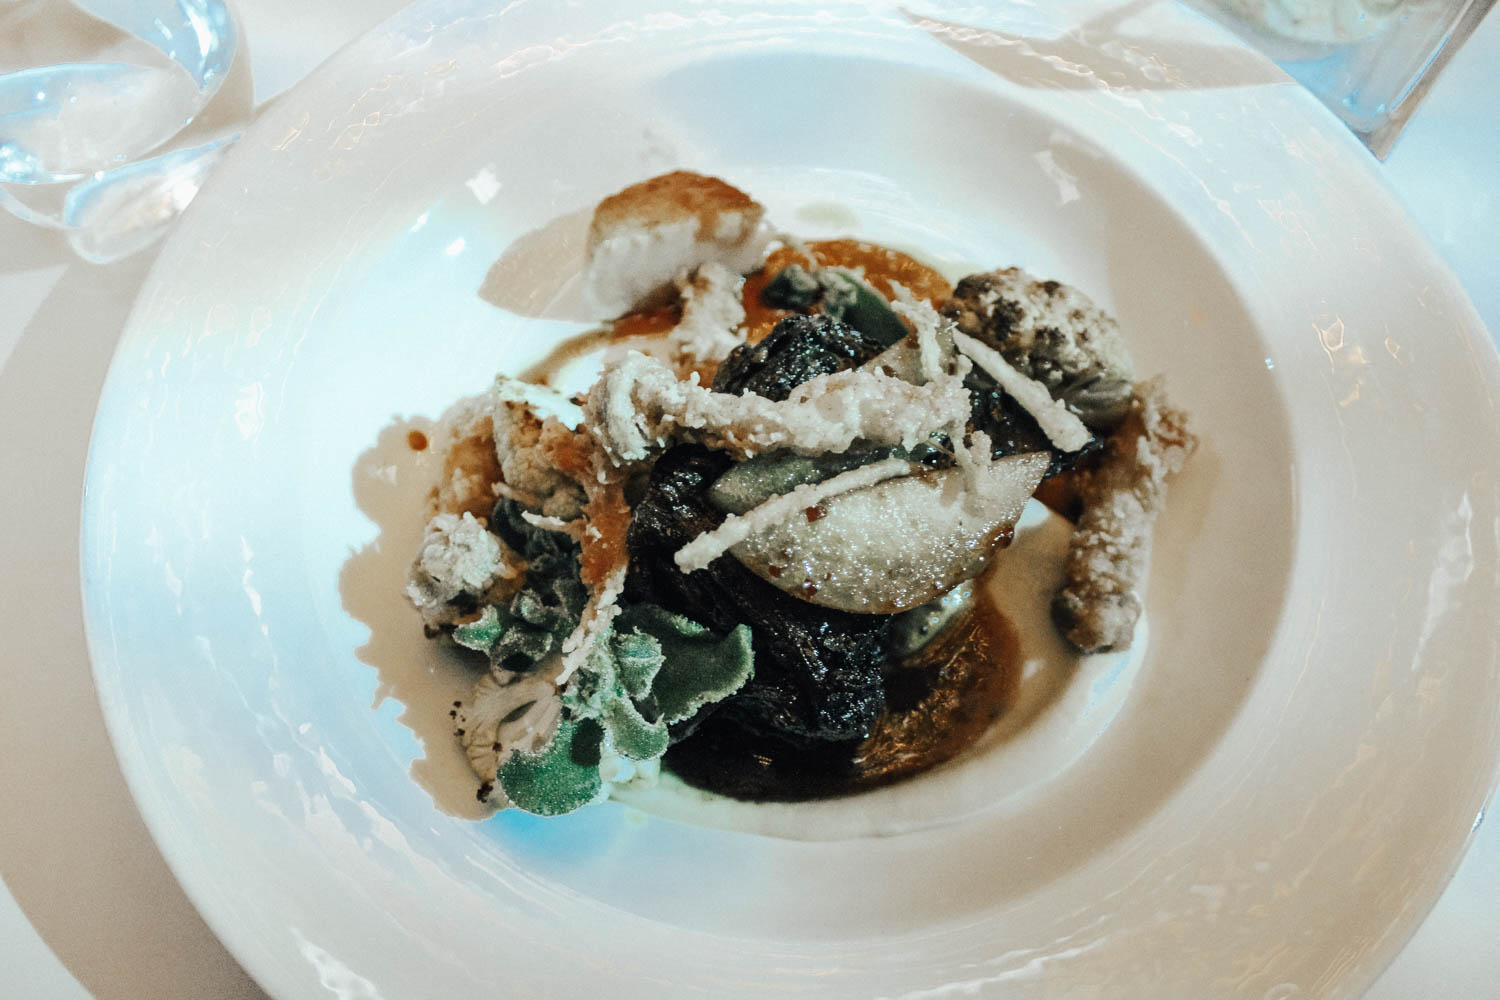 travel-guide-san-diego-recommendations-parq-restaurant6